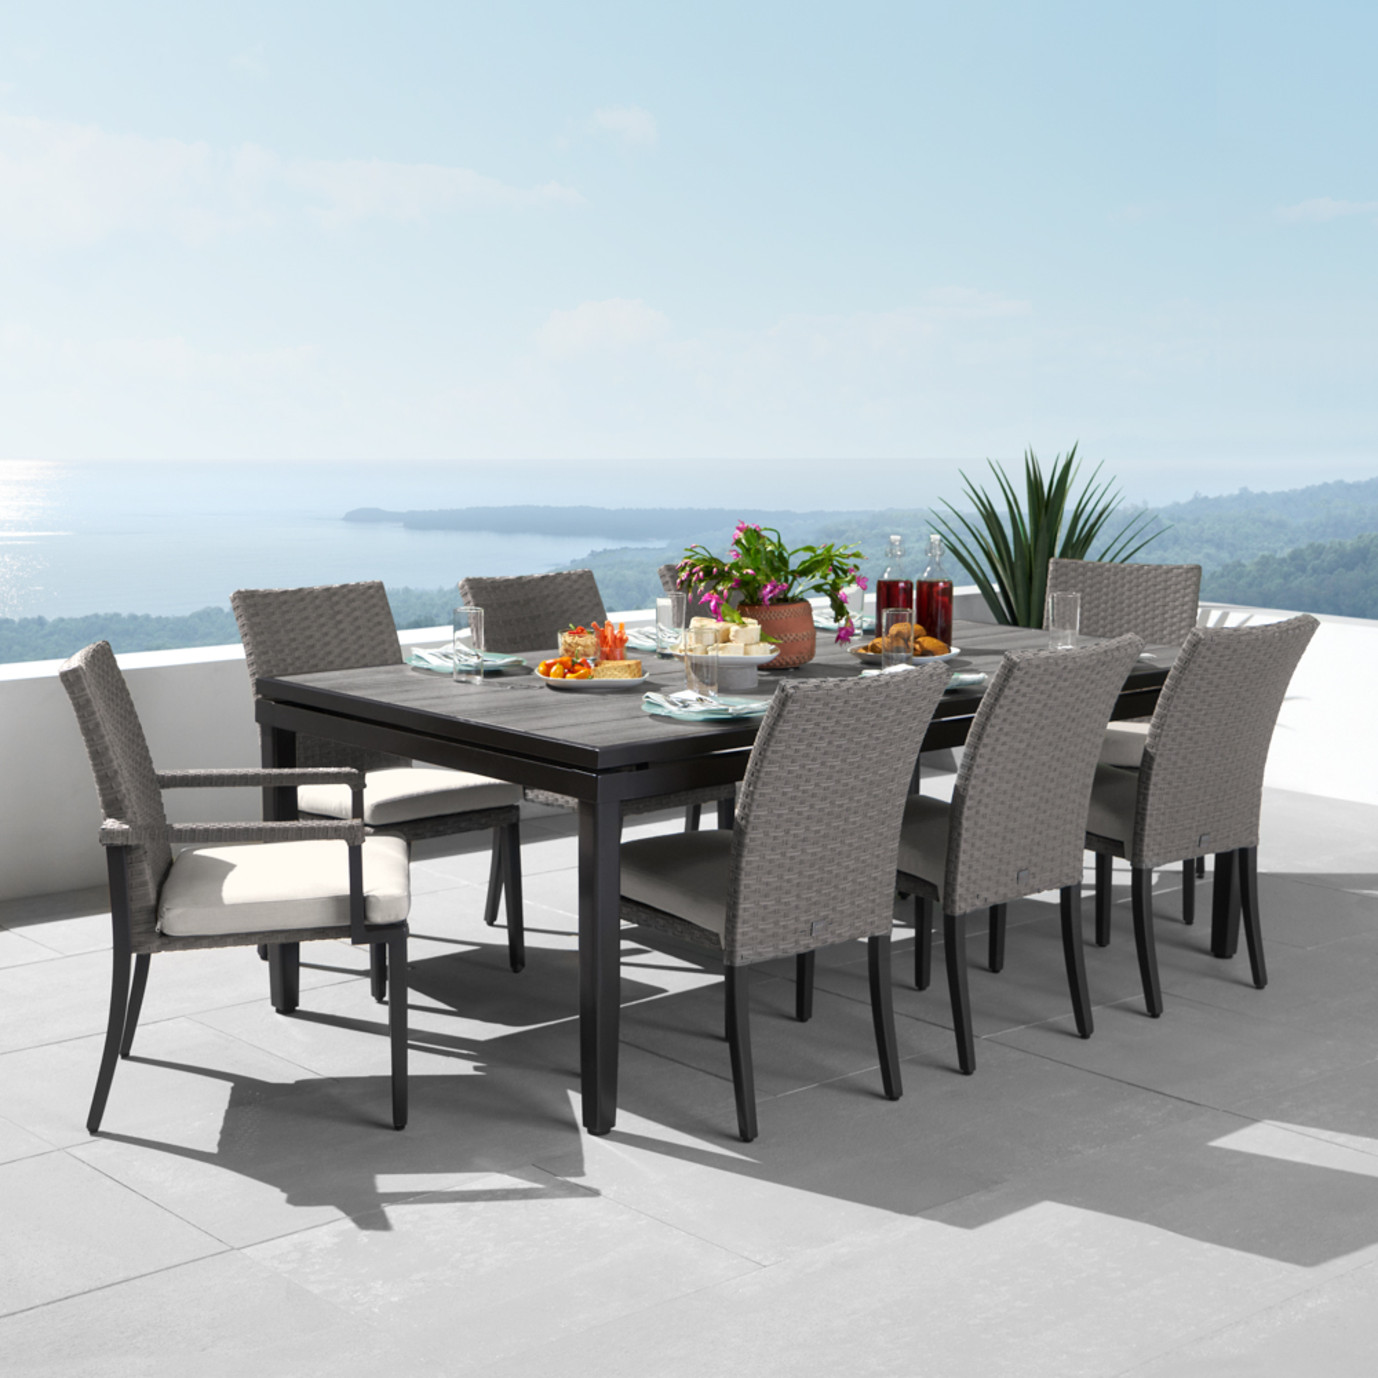 Vistano™ 9pc Outdoor Dining Set